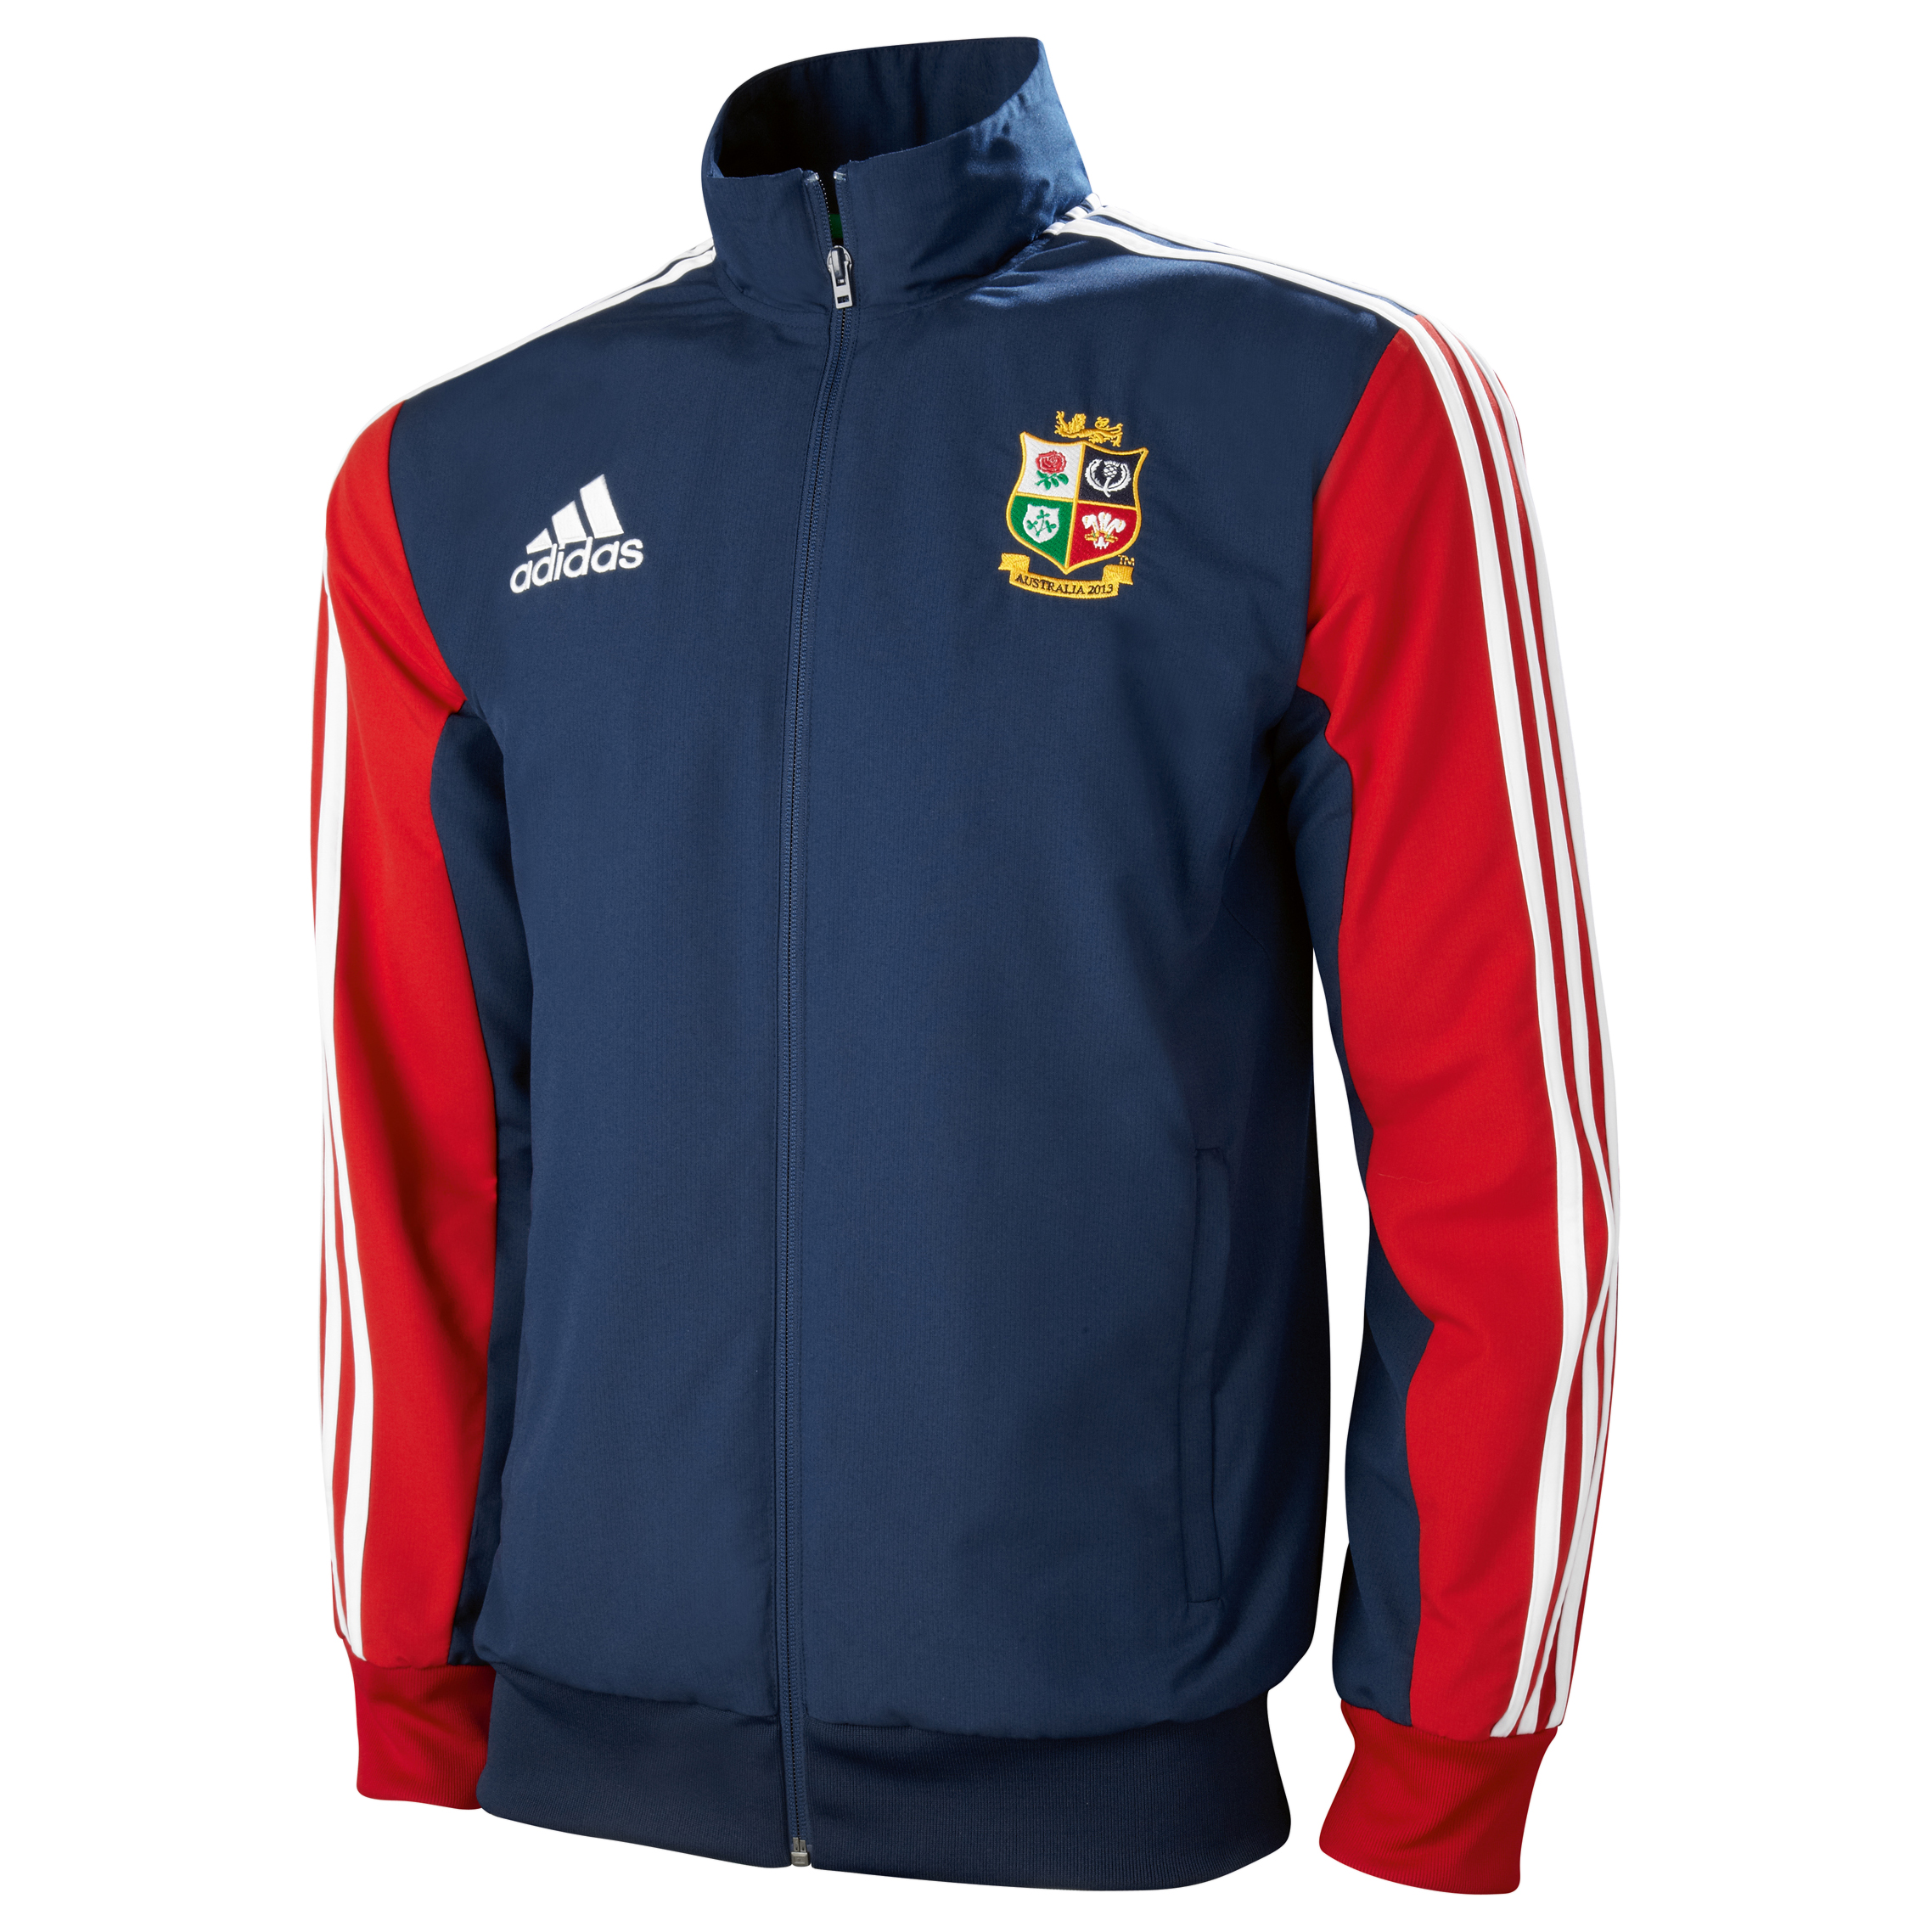 British & Irish Lions Presentation Jacket - Collegiate Navy/University Red/White